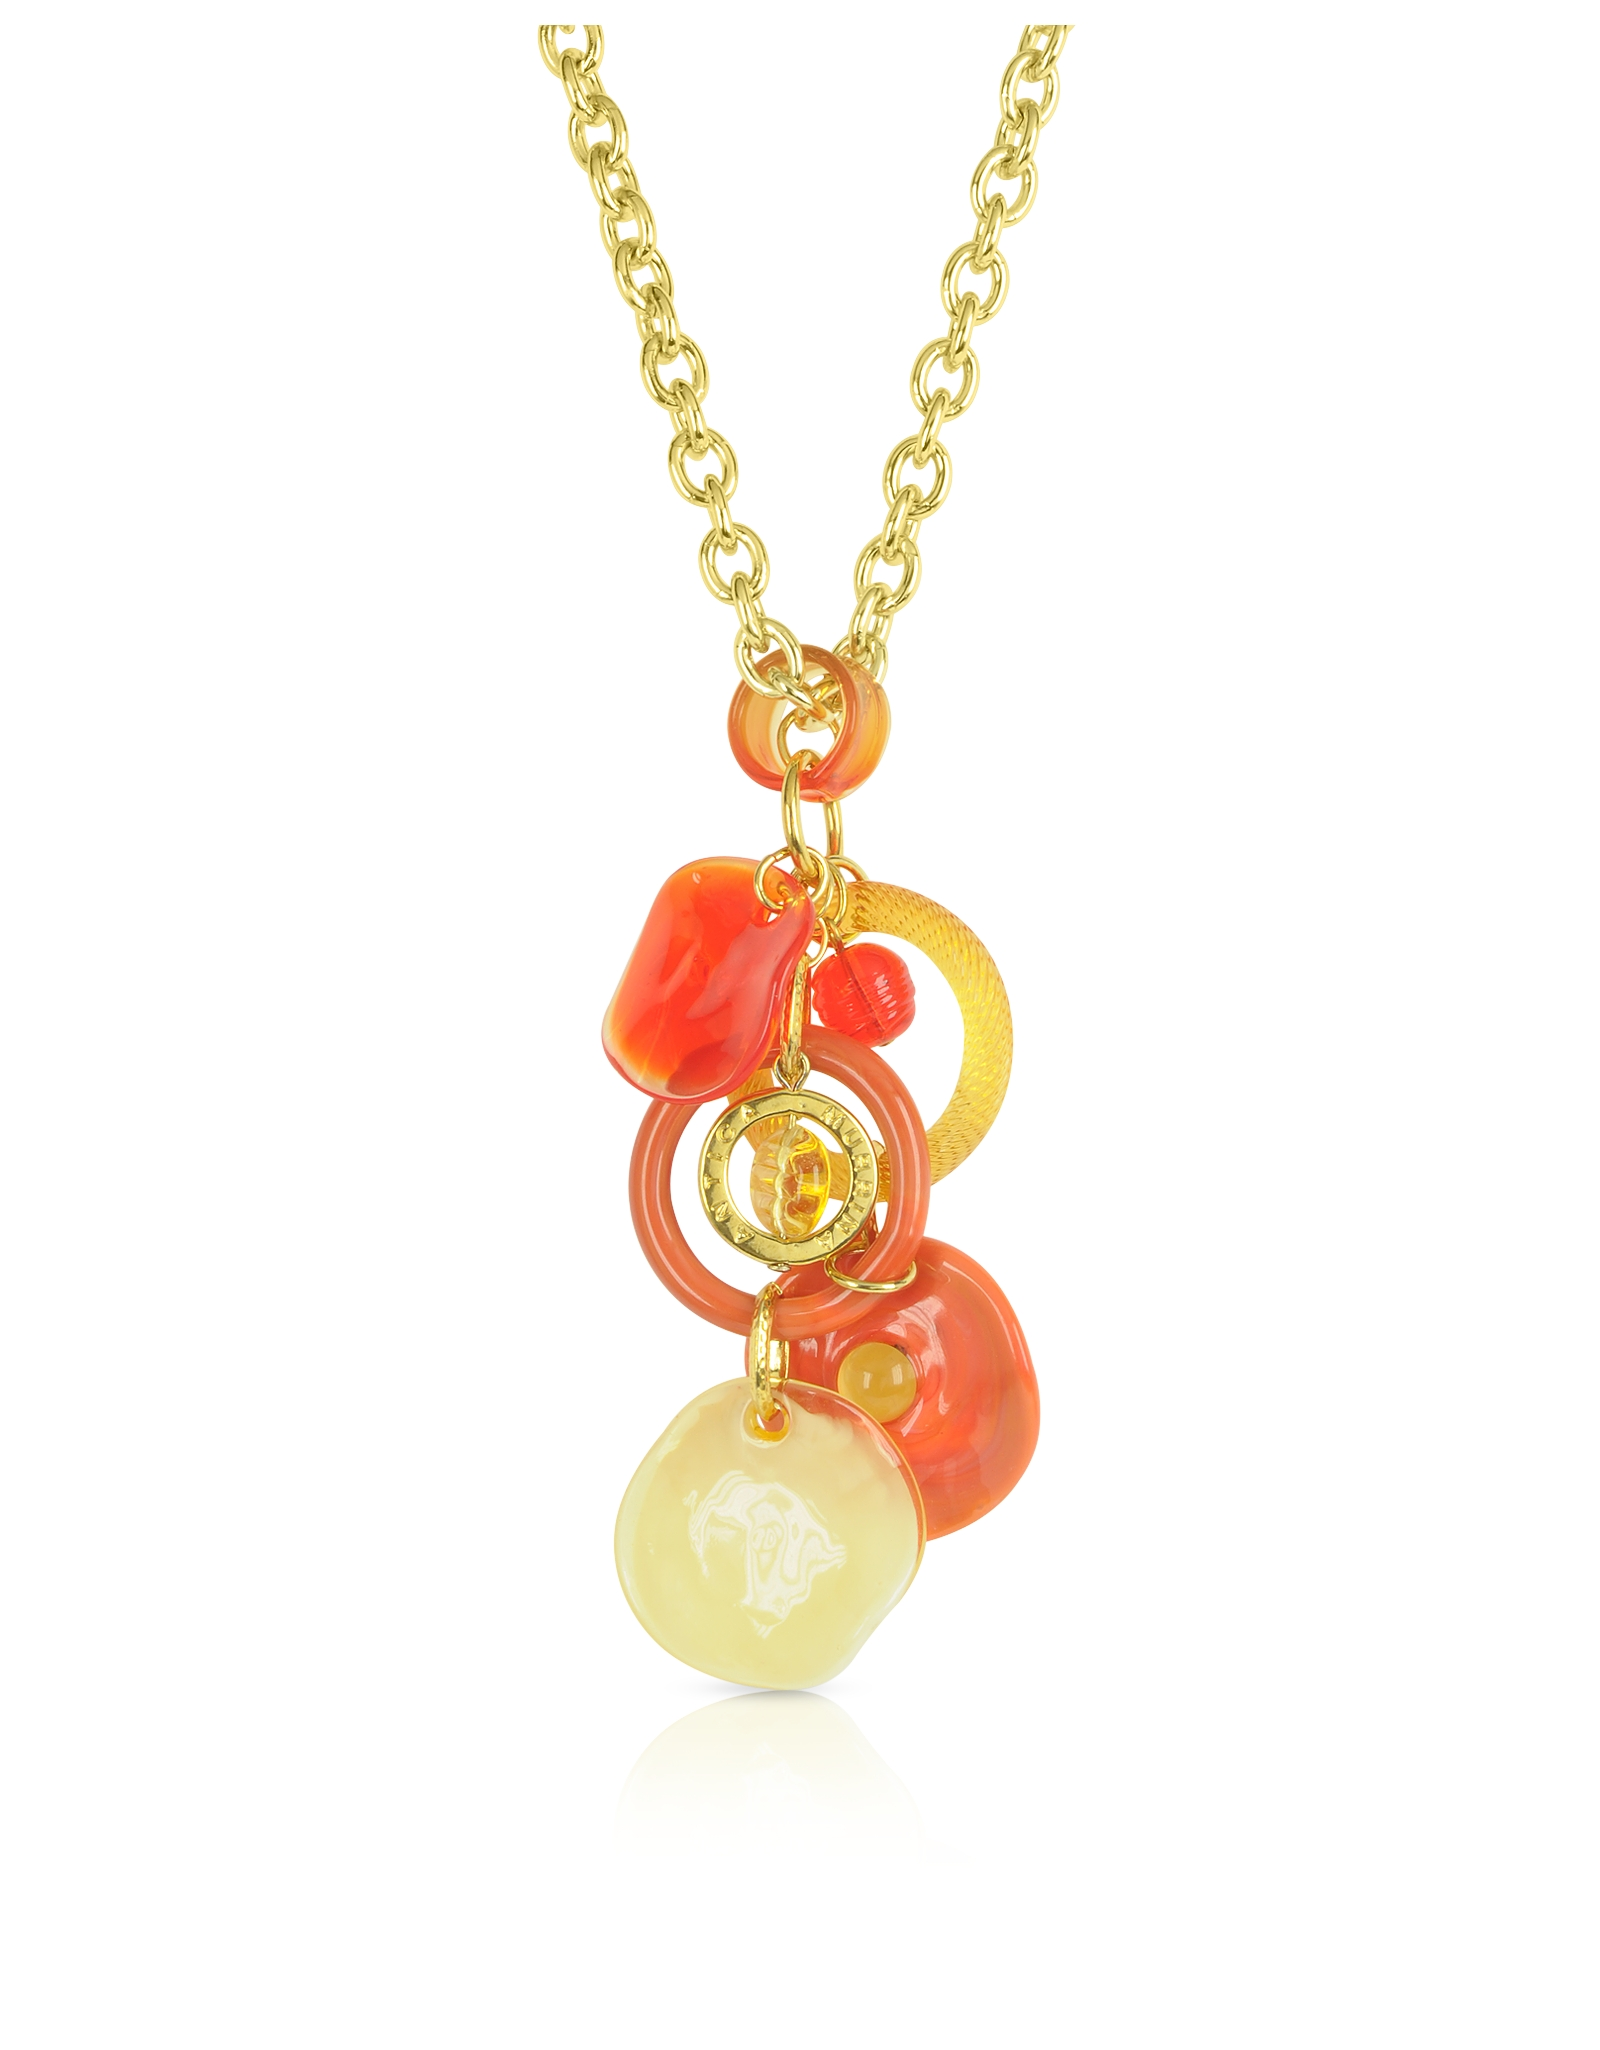 Lyst antica murrina shiva murano glass charm necklace in orange gallery mozeypictures Choice Image